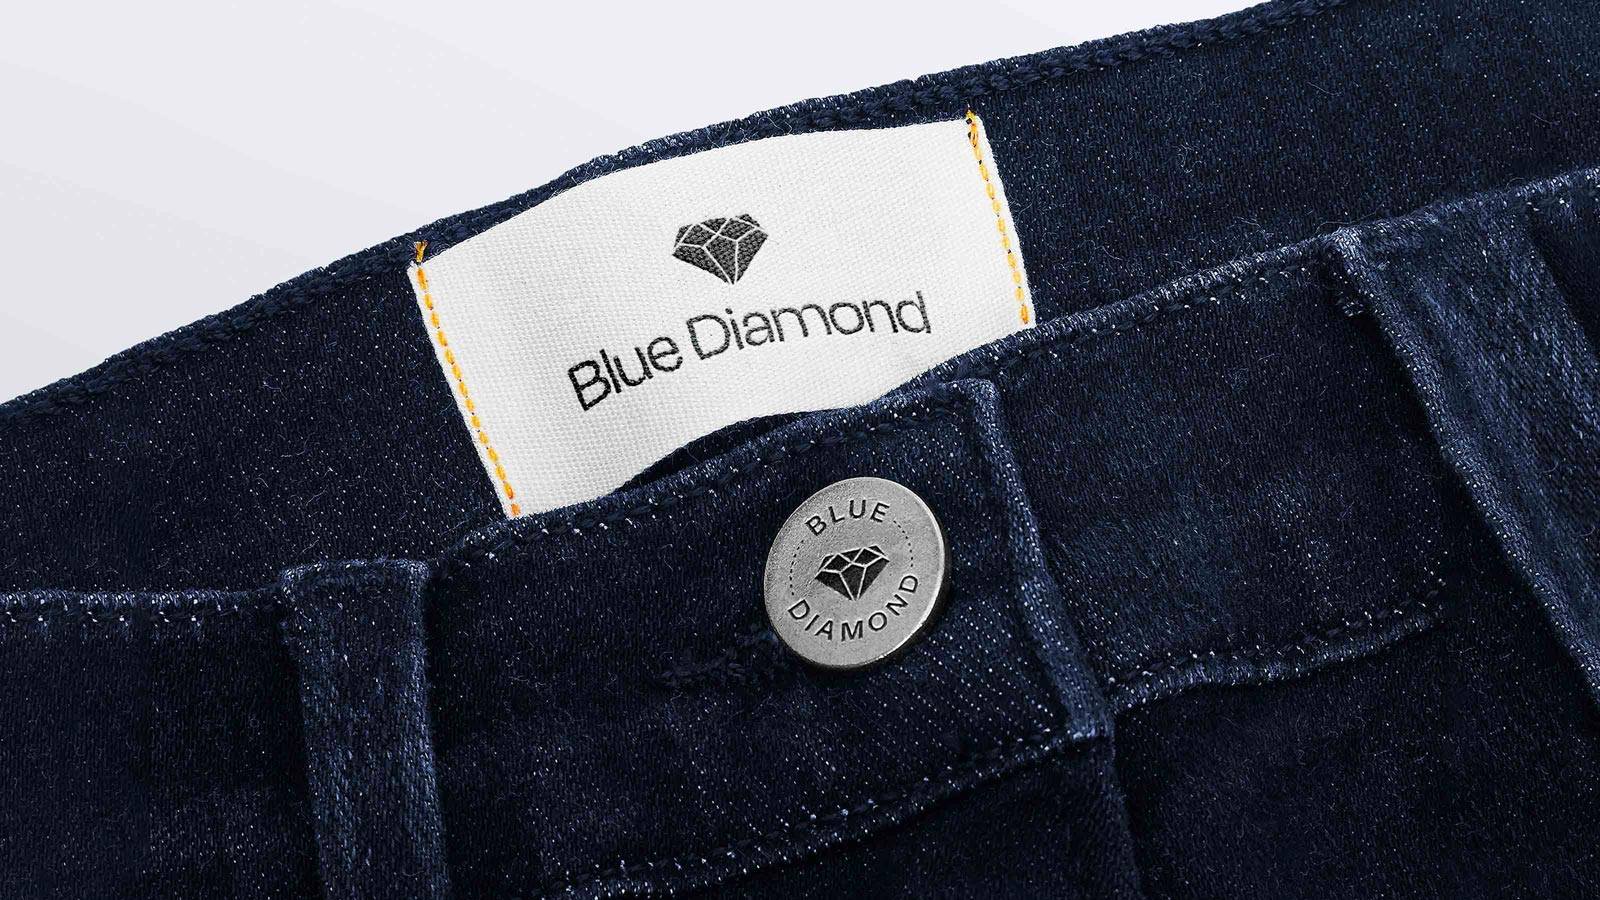 Blue Diamond engraved jeans buttons